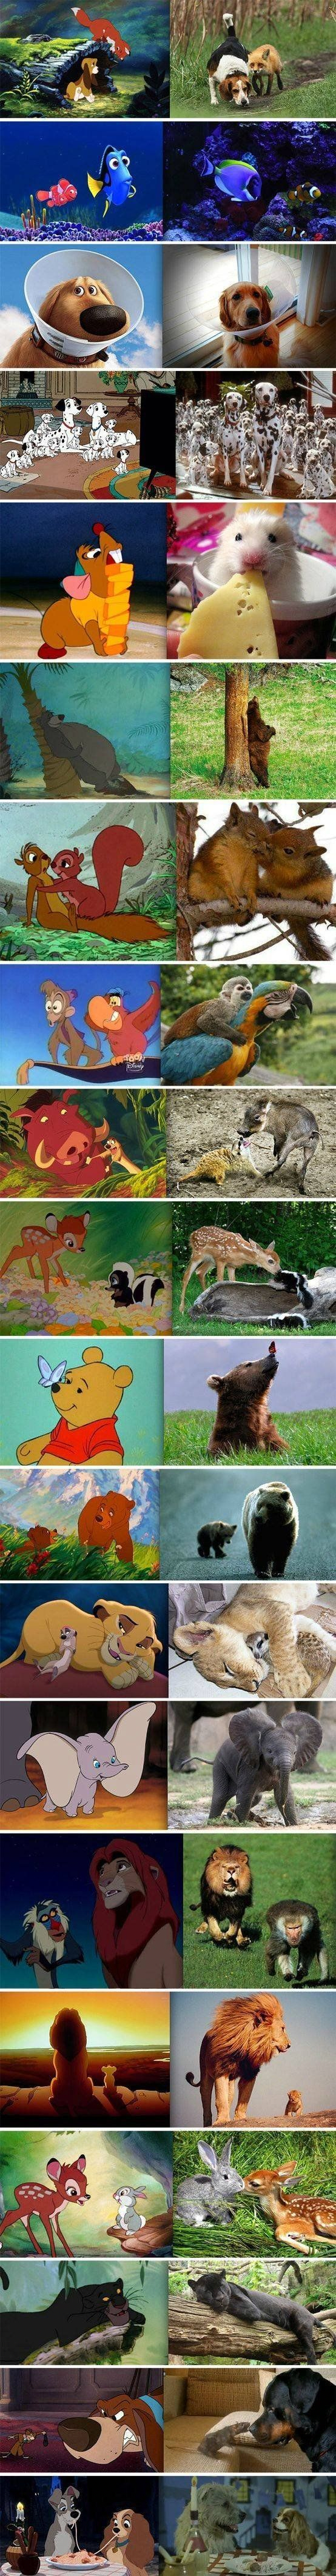 Disney in real life - Win Picture | Webfail - Fail Pictures and Fail Videos